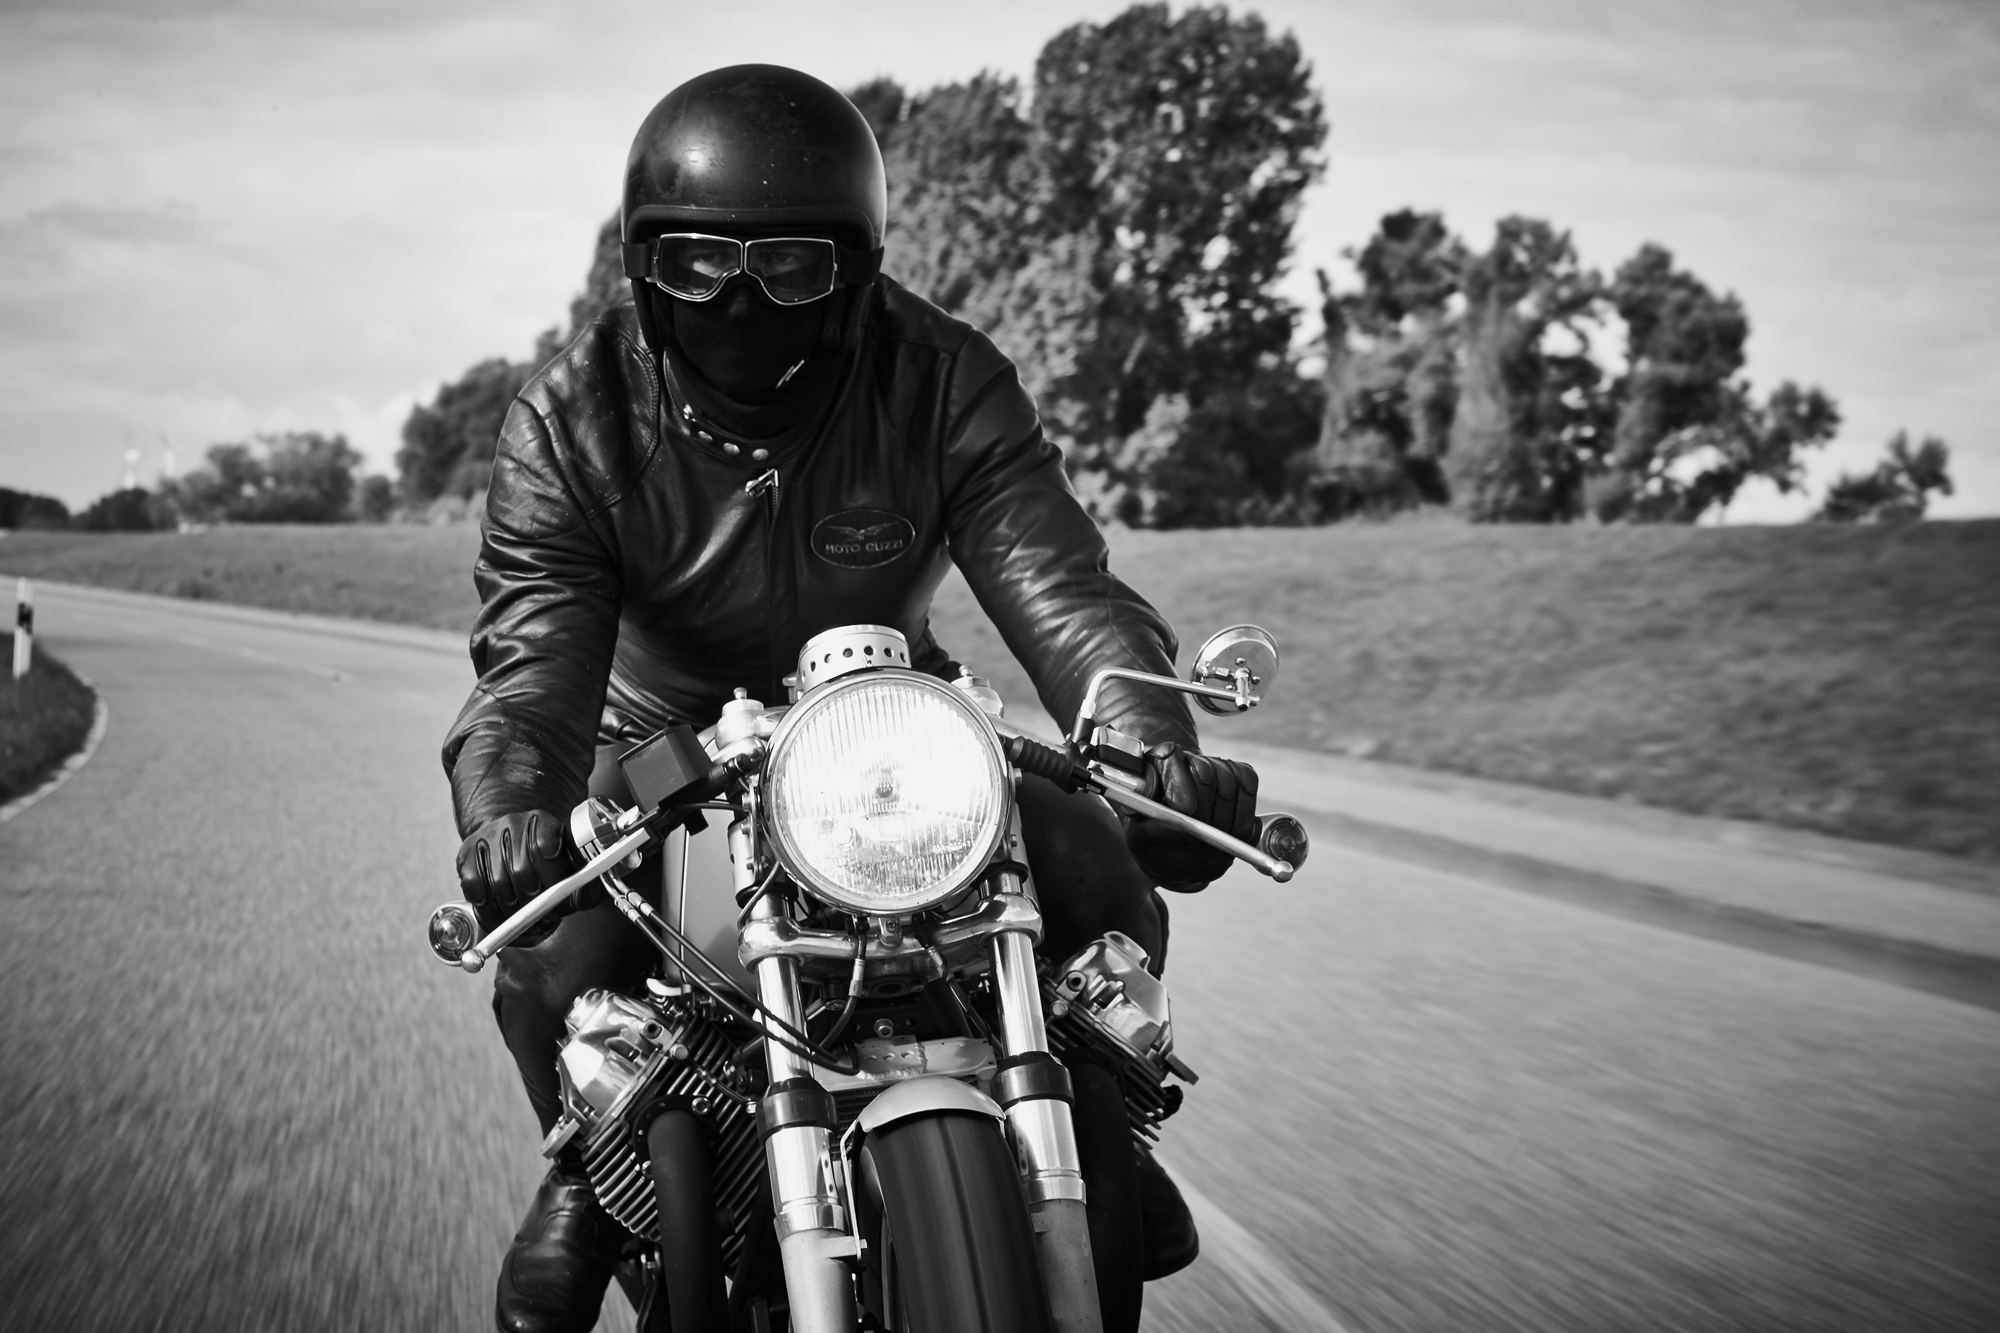 caferacer_09